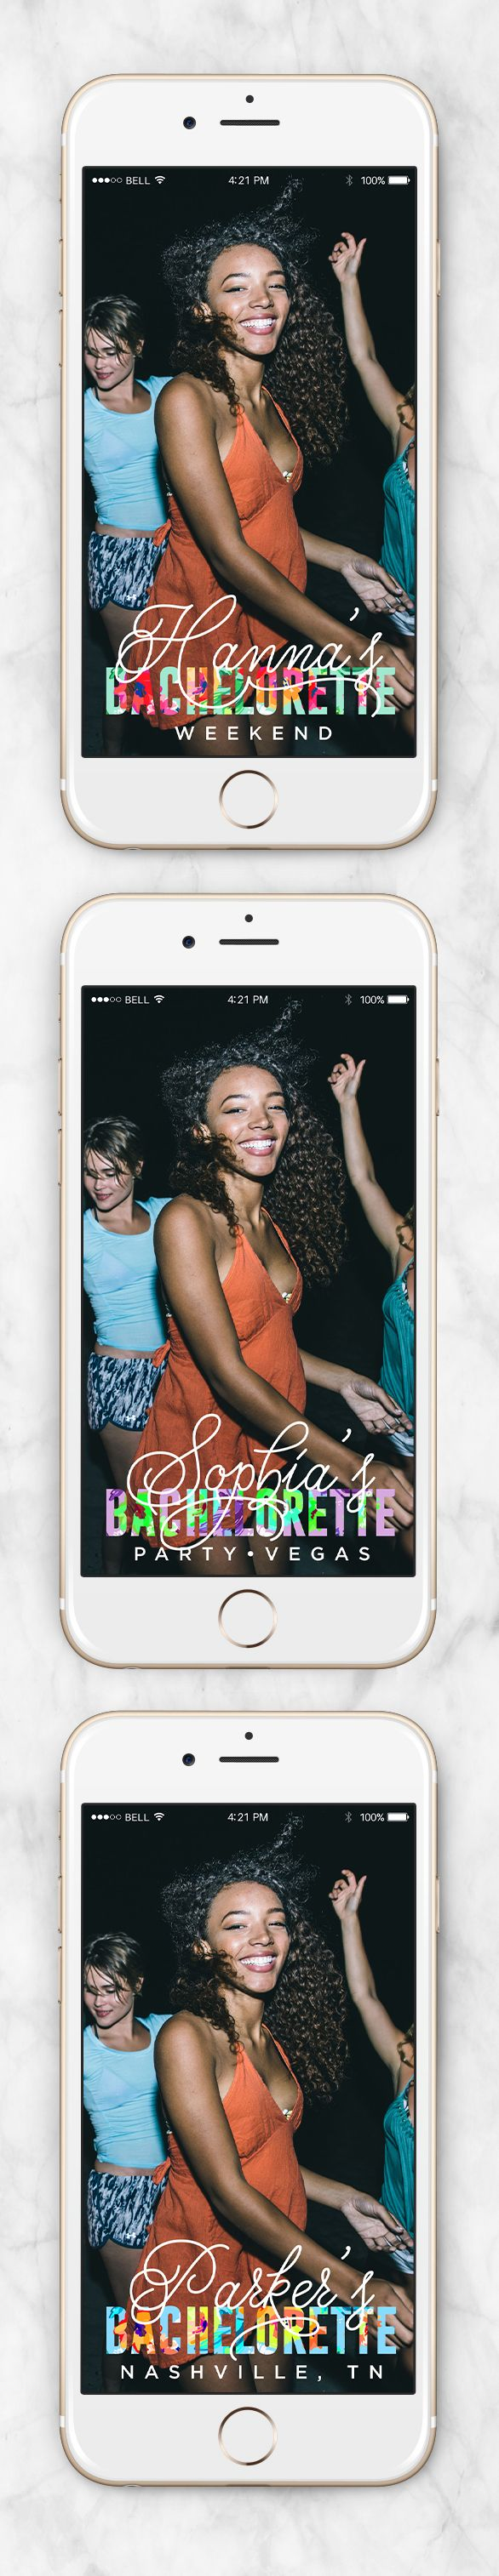 Bachelorette Snapchat Geofilter, Party Snapchat Filter, Personalized On Demand Geofilter, Snapchat Geofilter - Tropical Floral Design - Wit & Kit